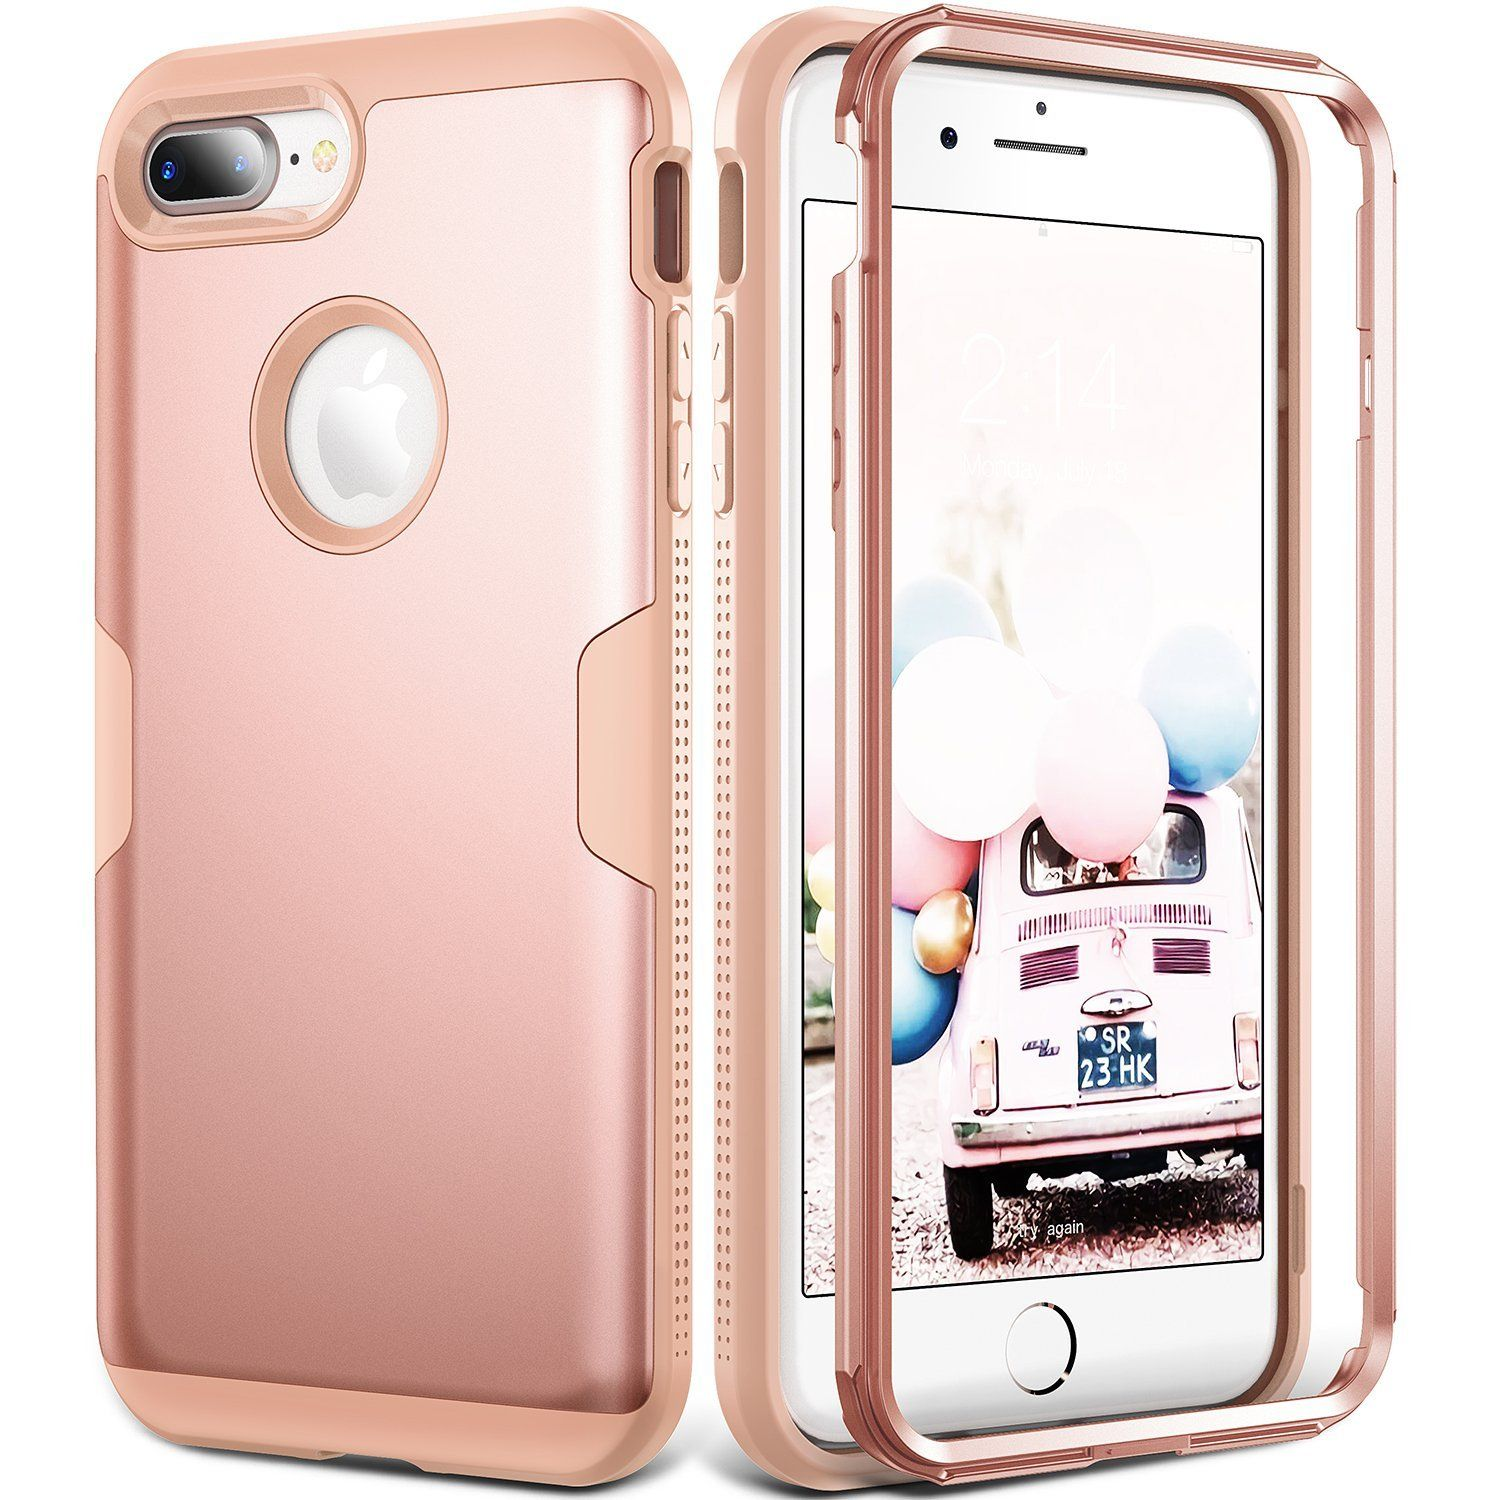 Iphone 8 Plus Case Iphone 7 Plus Case Youmaker Rose Gold Full Body Heavy Duty Protection Shockproof Case Cover For A Iphone 7 Plus Cases Iphone Iphone 8 Plus